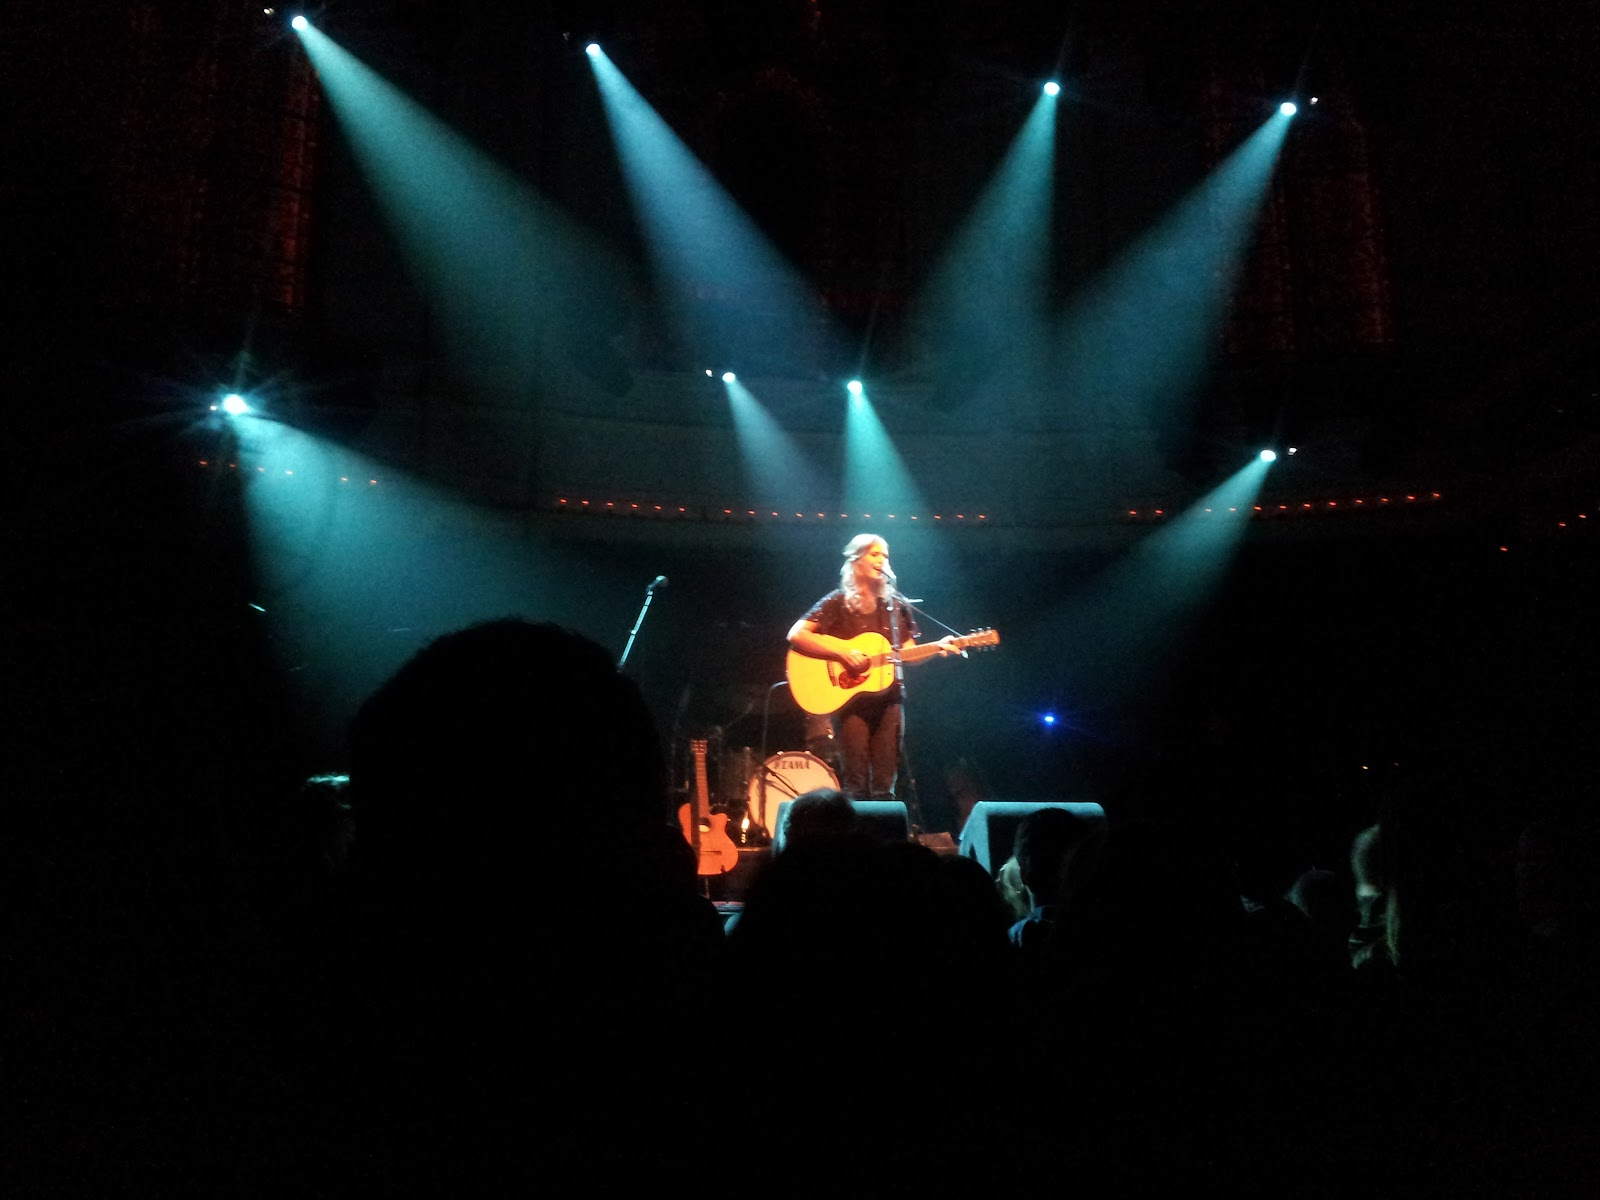 Maaike Ouboter in Paradiso